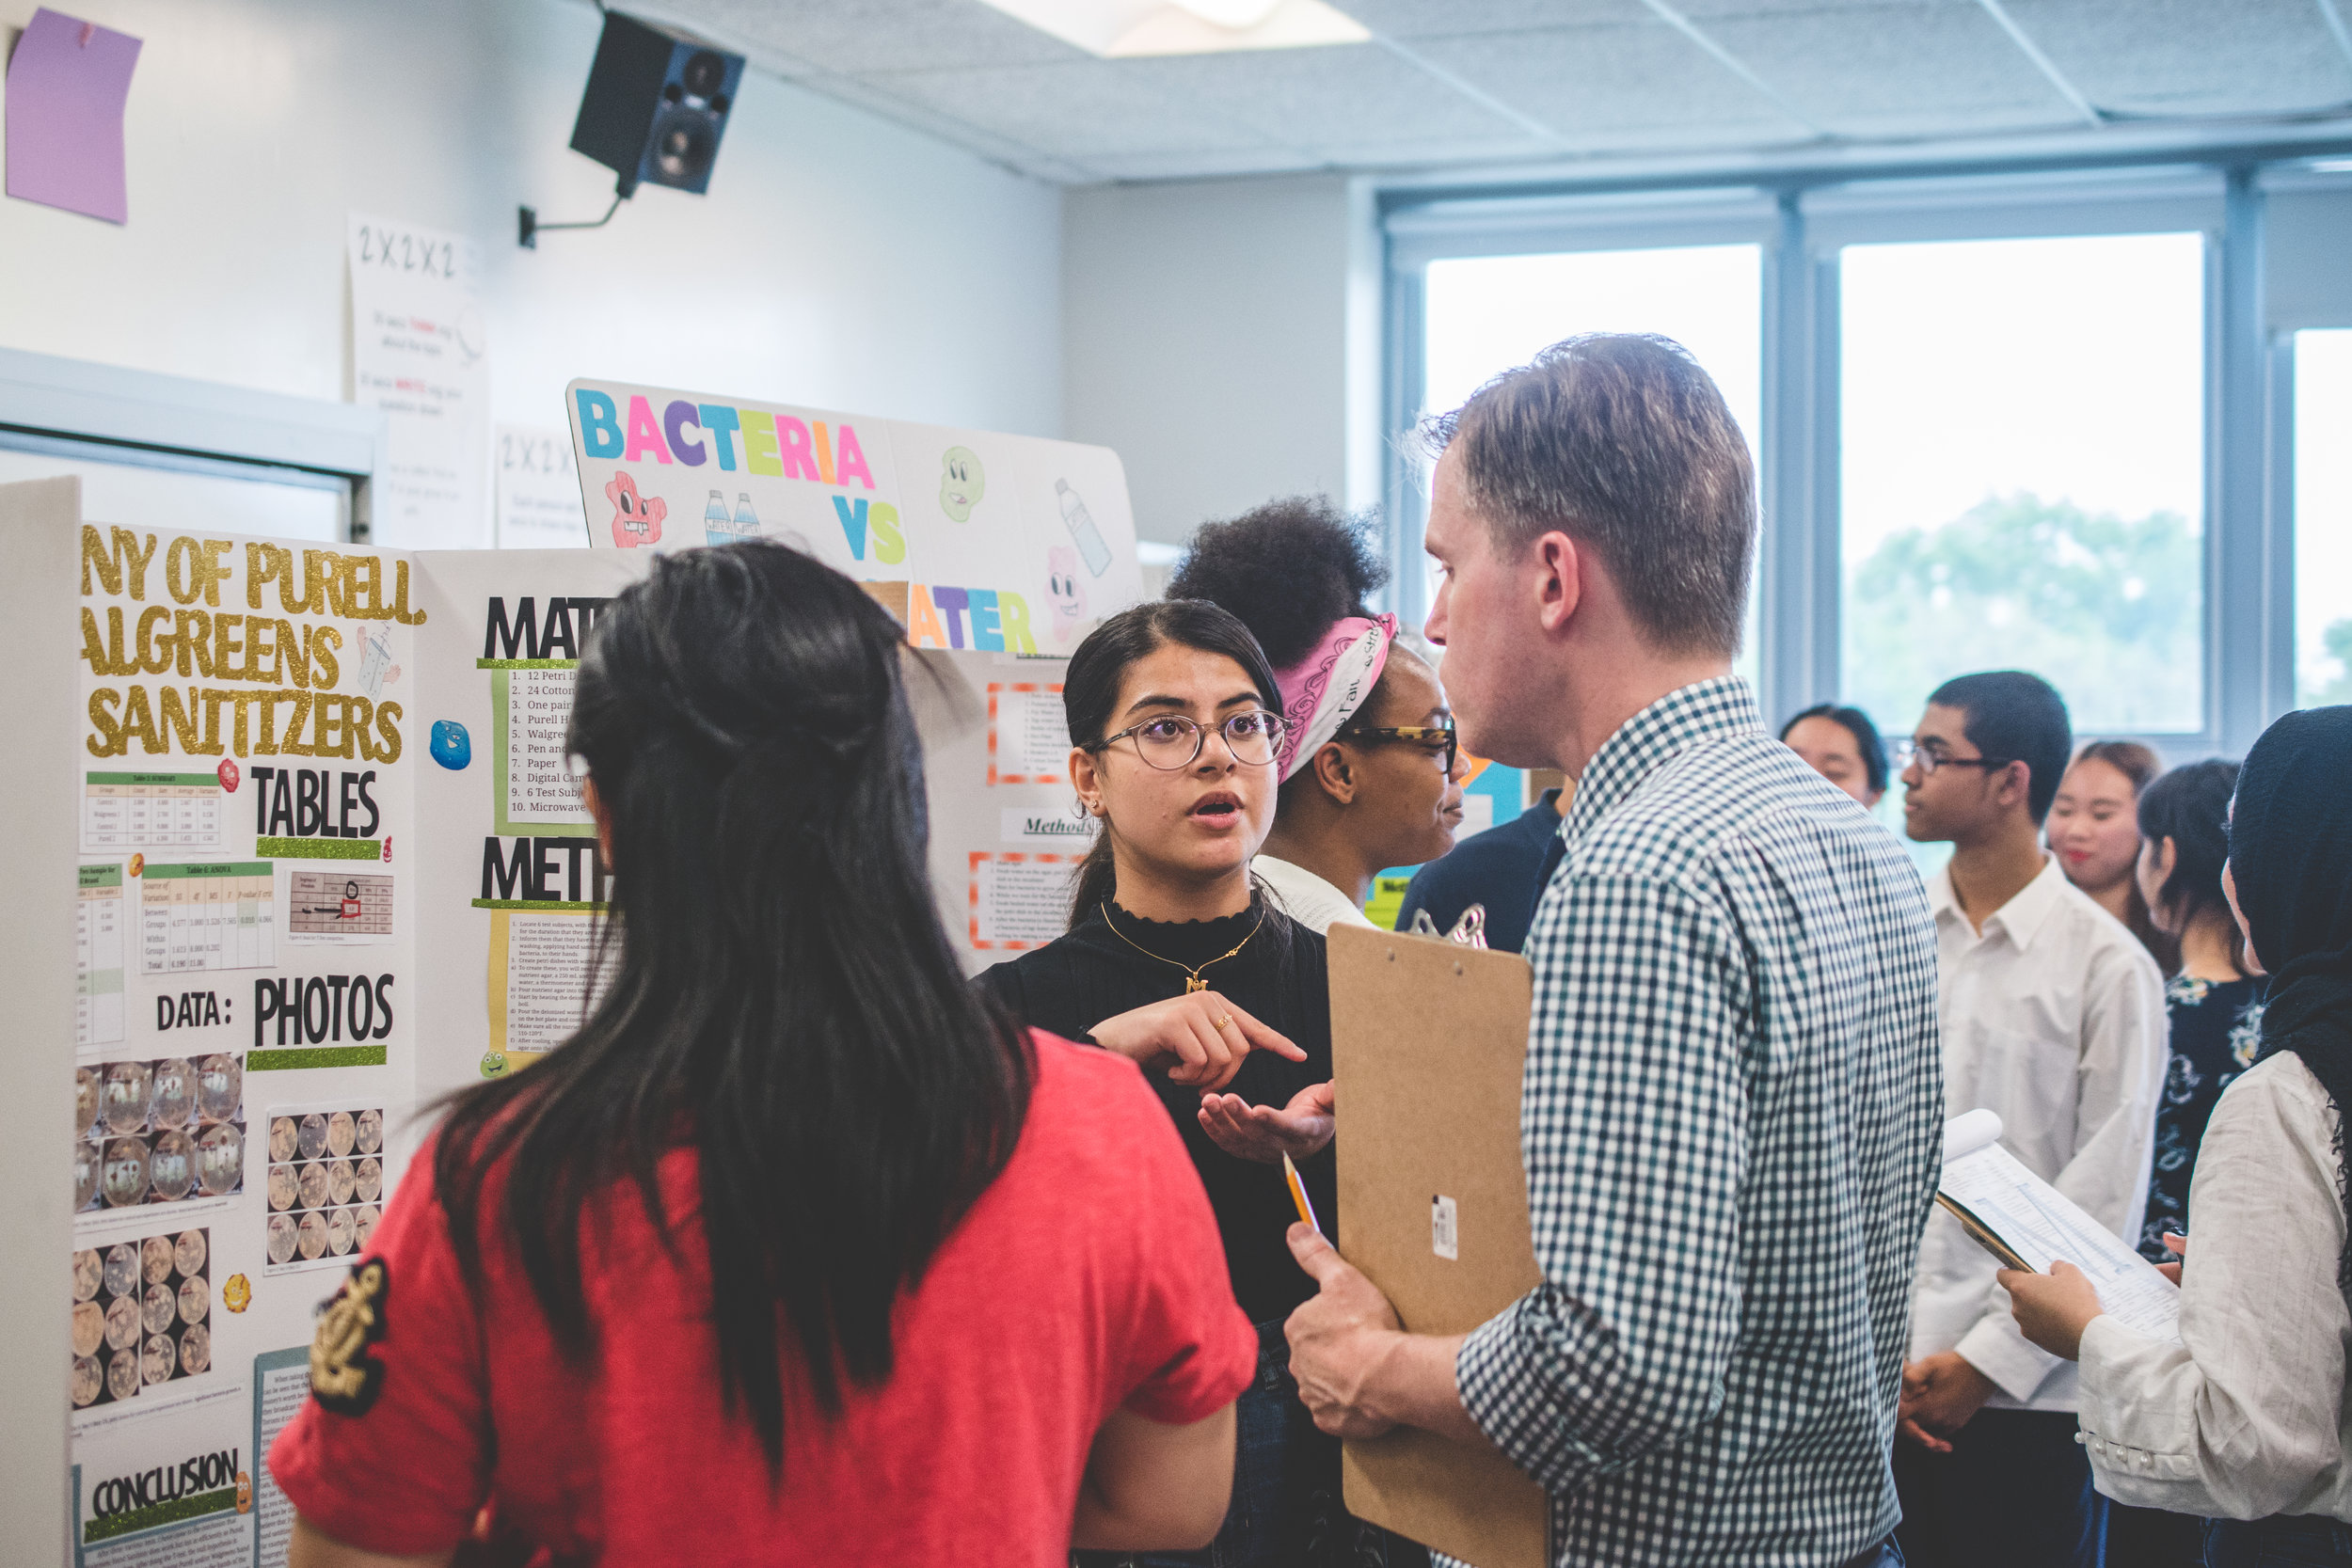 Maham Ghori '21 explains the results of her research on hand sanitizers to Dr. Trevor Stokes, a biology teacher and judge for the science fair.  Photo Credit: Justin Chow